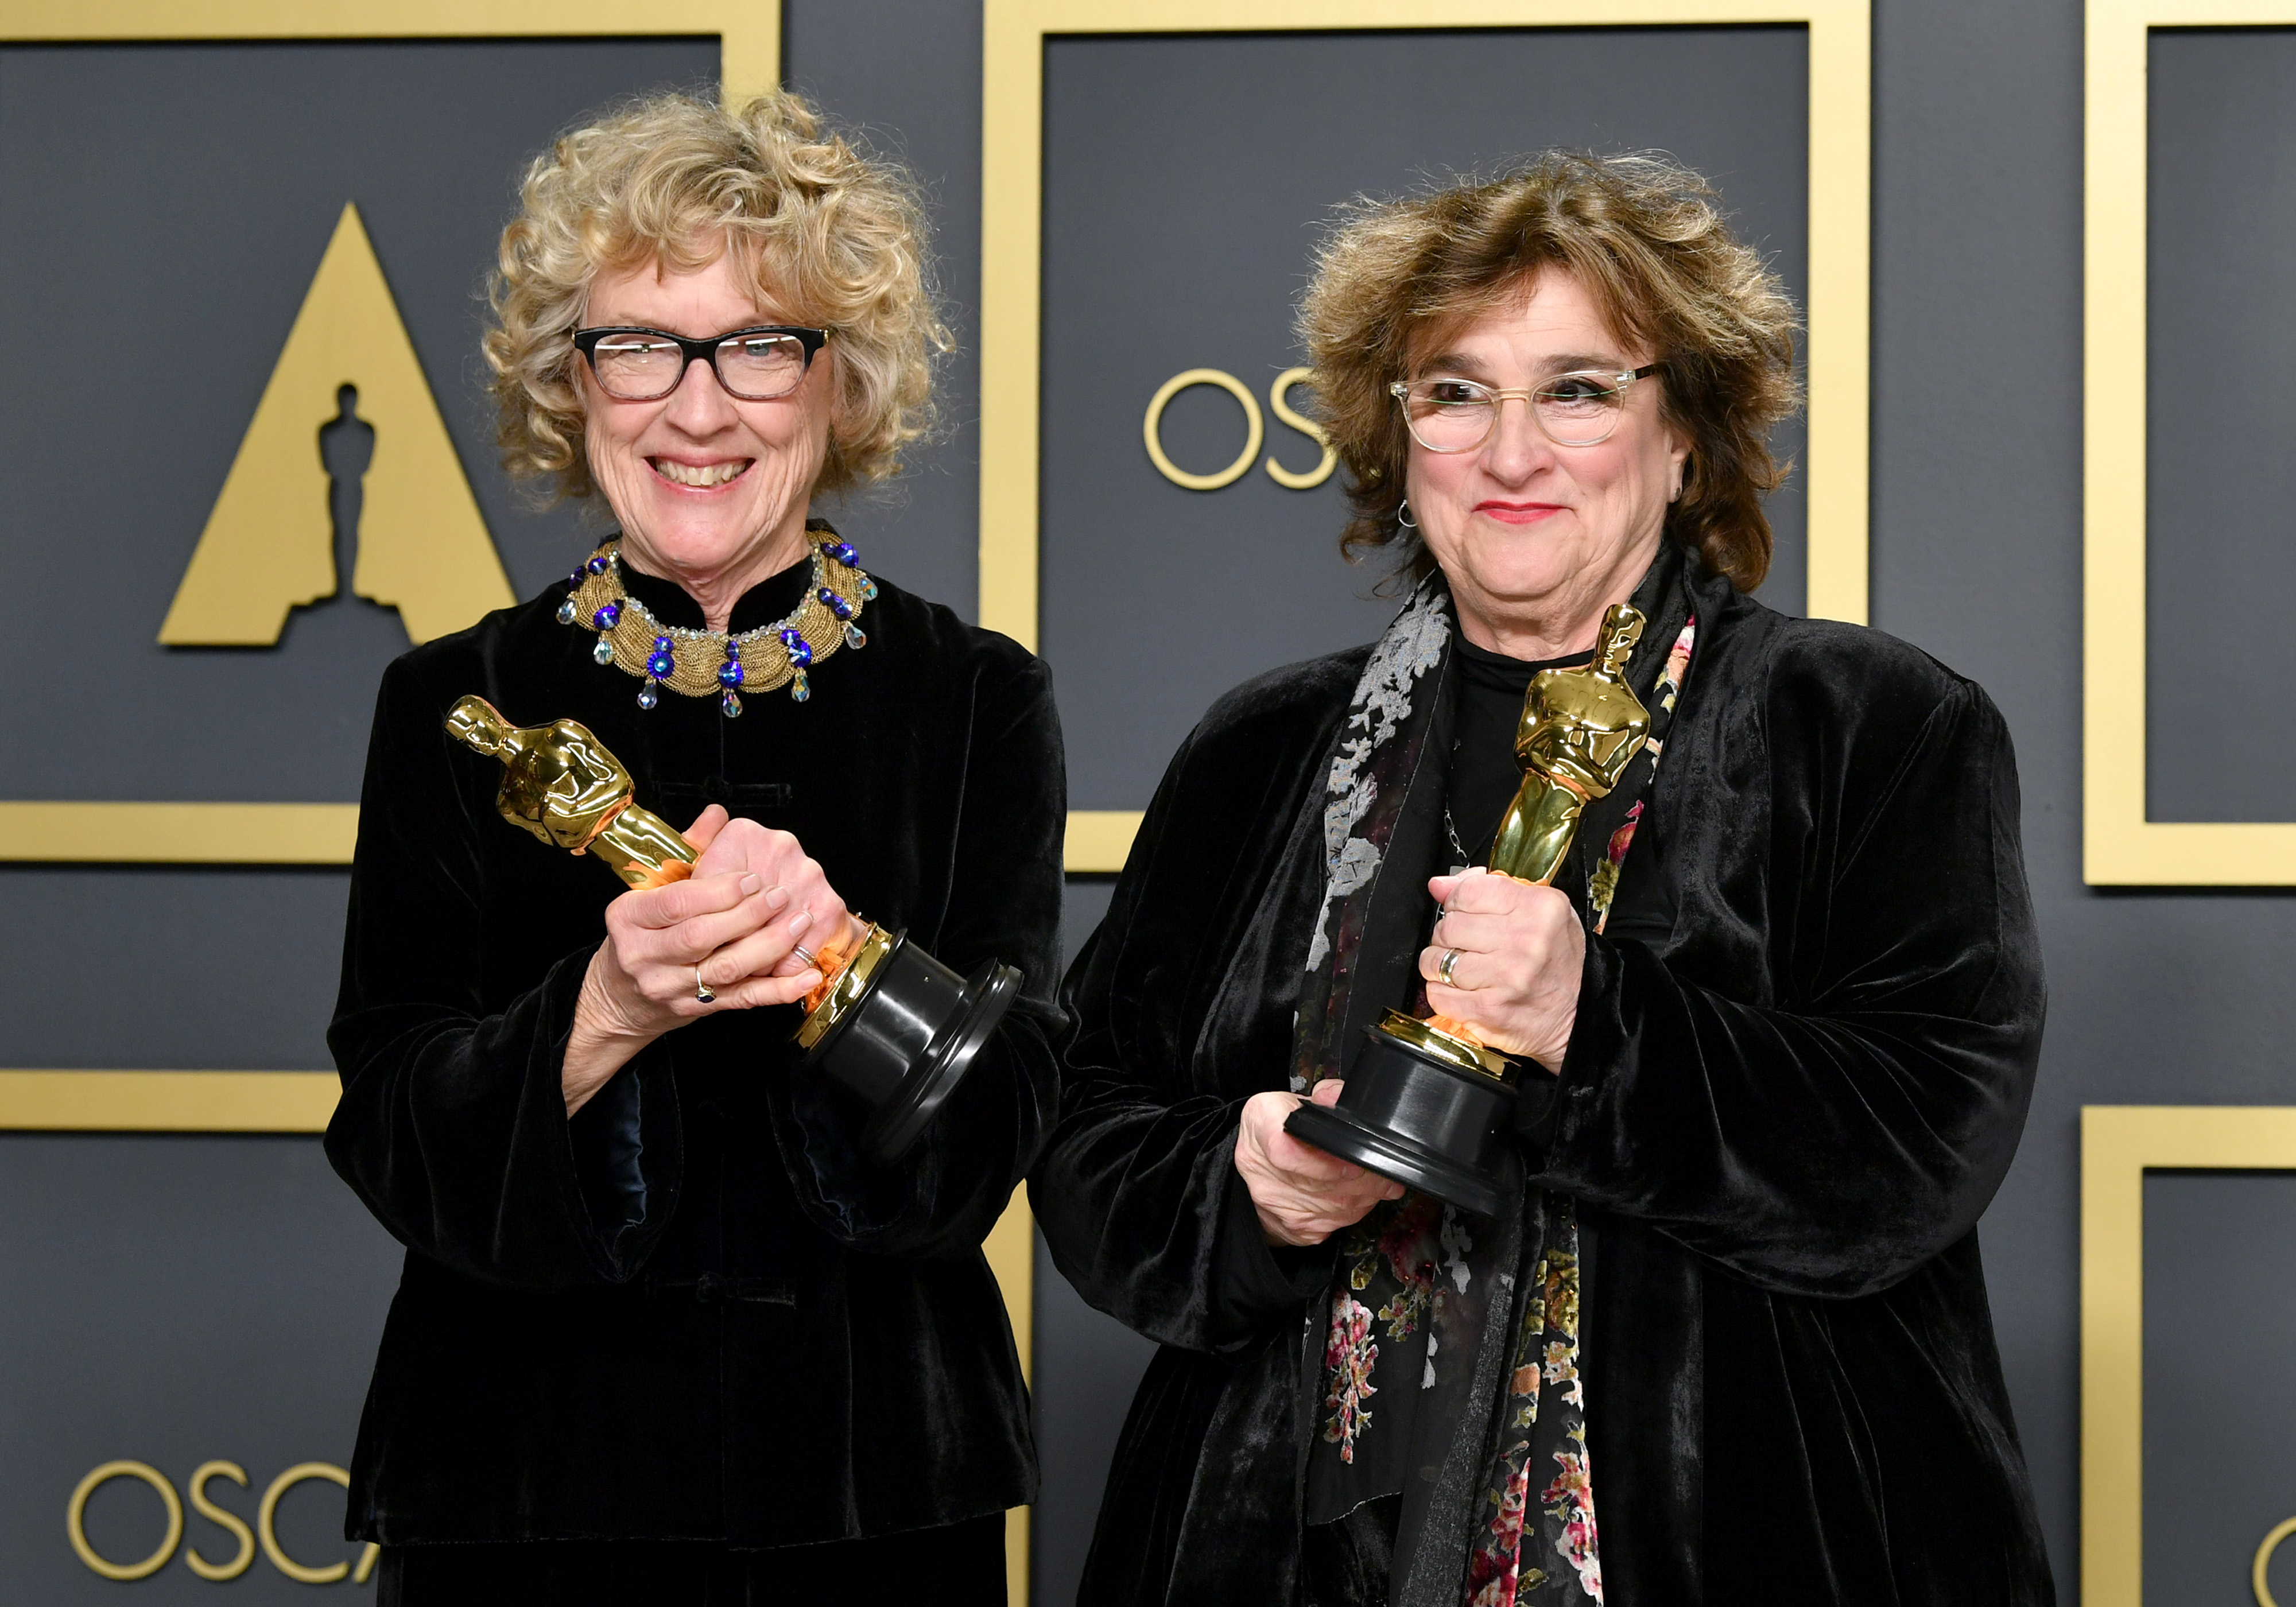 """Set decorator Nancy Haigh and production designer Barbara Ling, winners of the Production Design award for """"Once Upon a Time in Hollywood,""""  pose in the press room during the 92nd Annual Academy Awards at Hollywood and Highland on February 09, 2020 in Hollywood, California. (Photo by Amy Sussman/Getty Images)"""